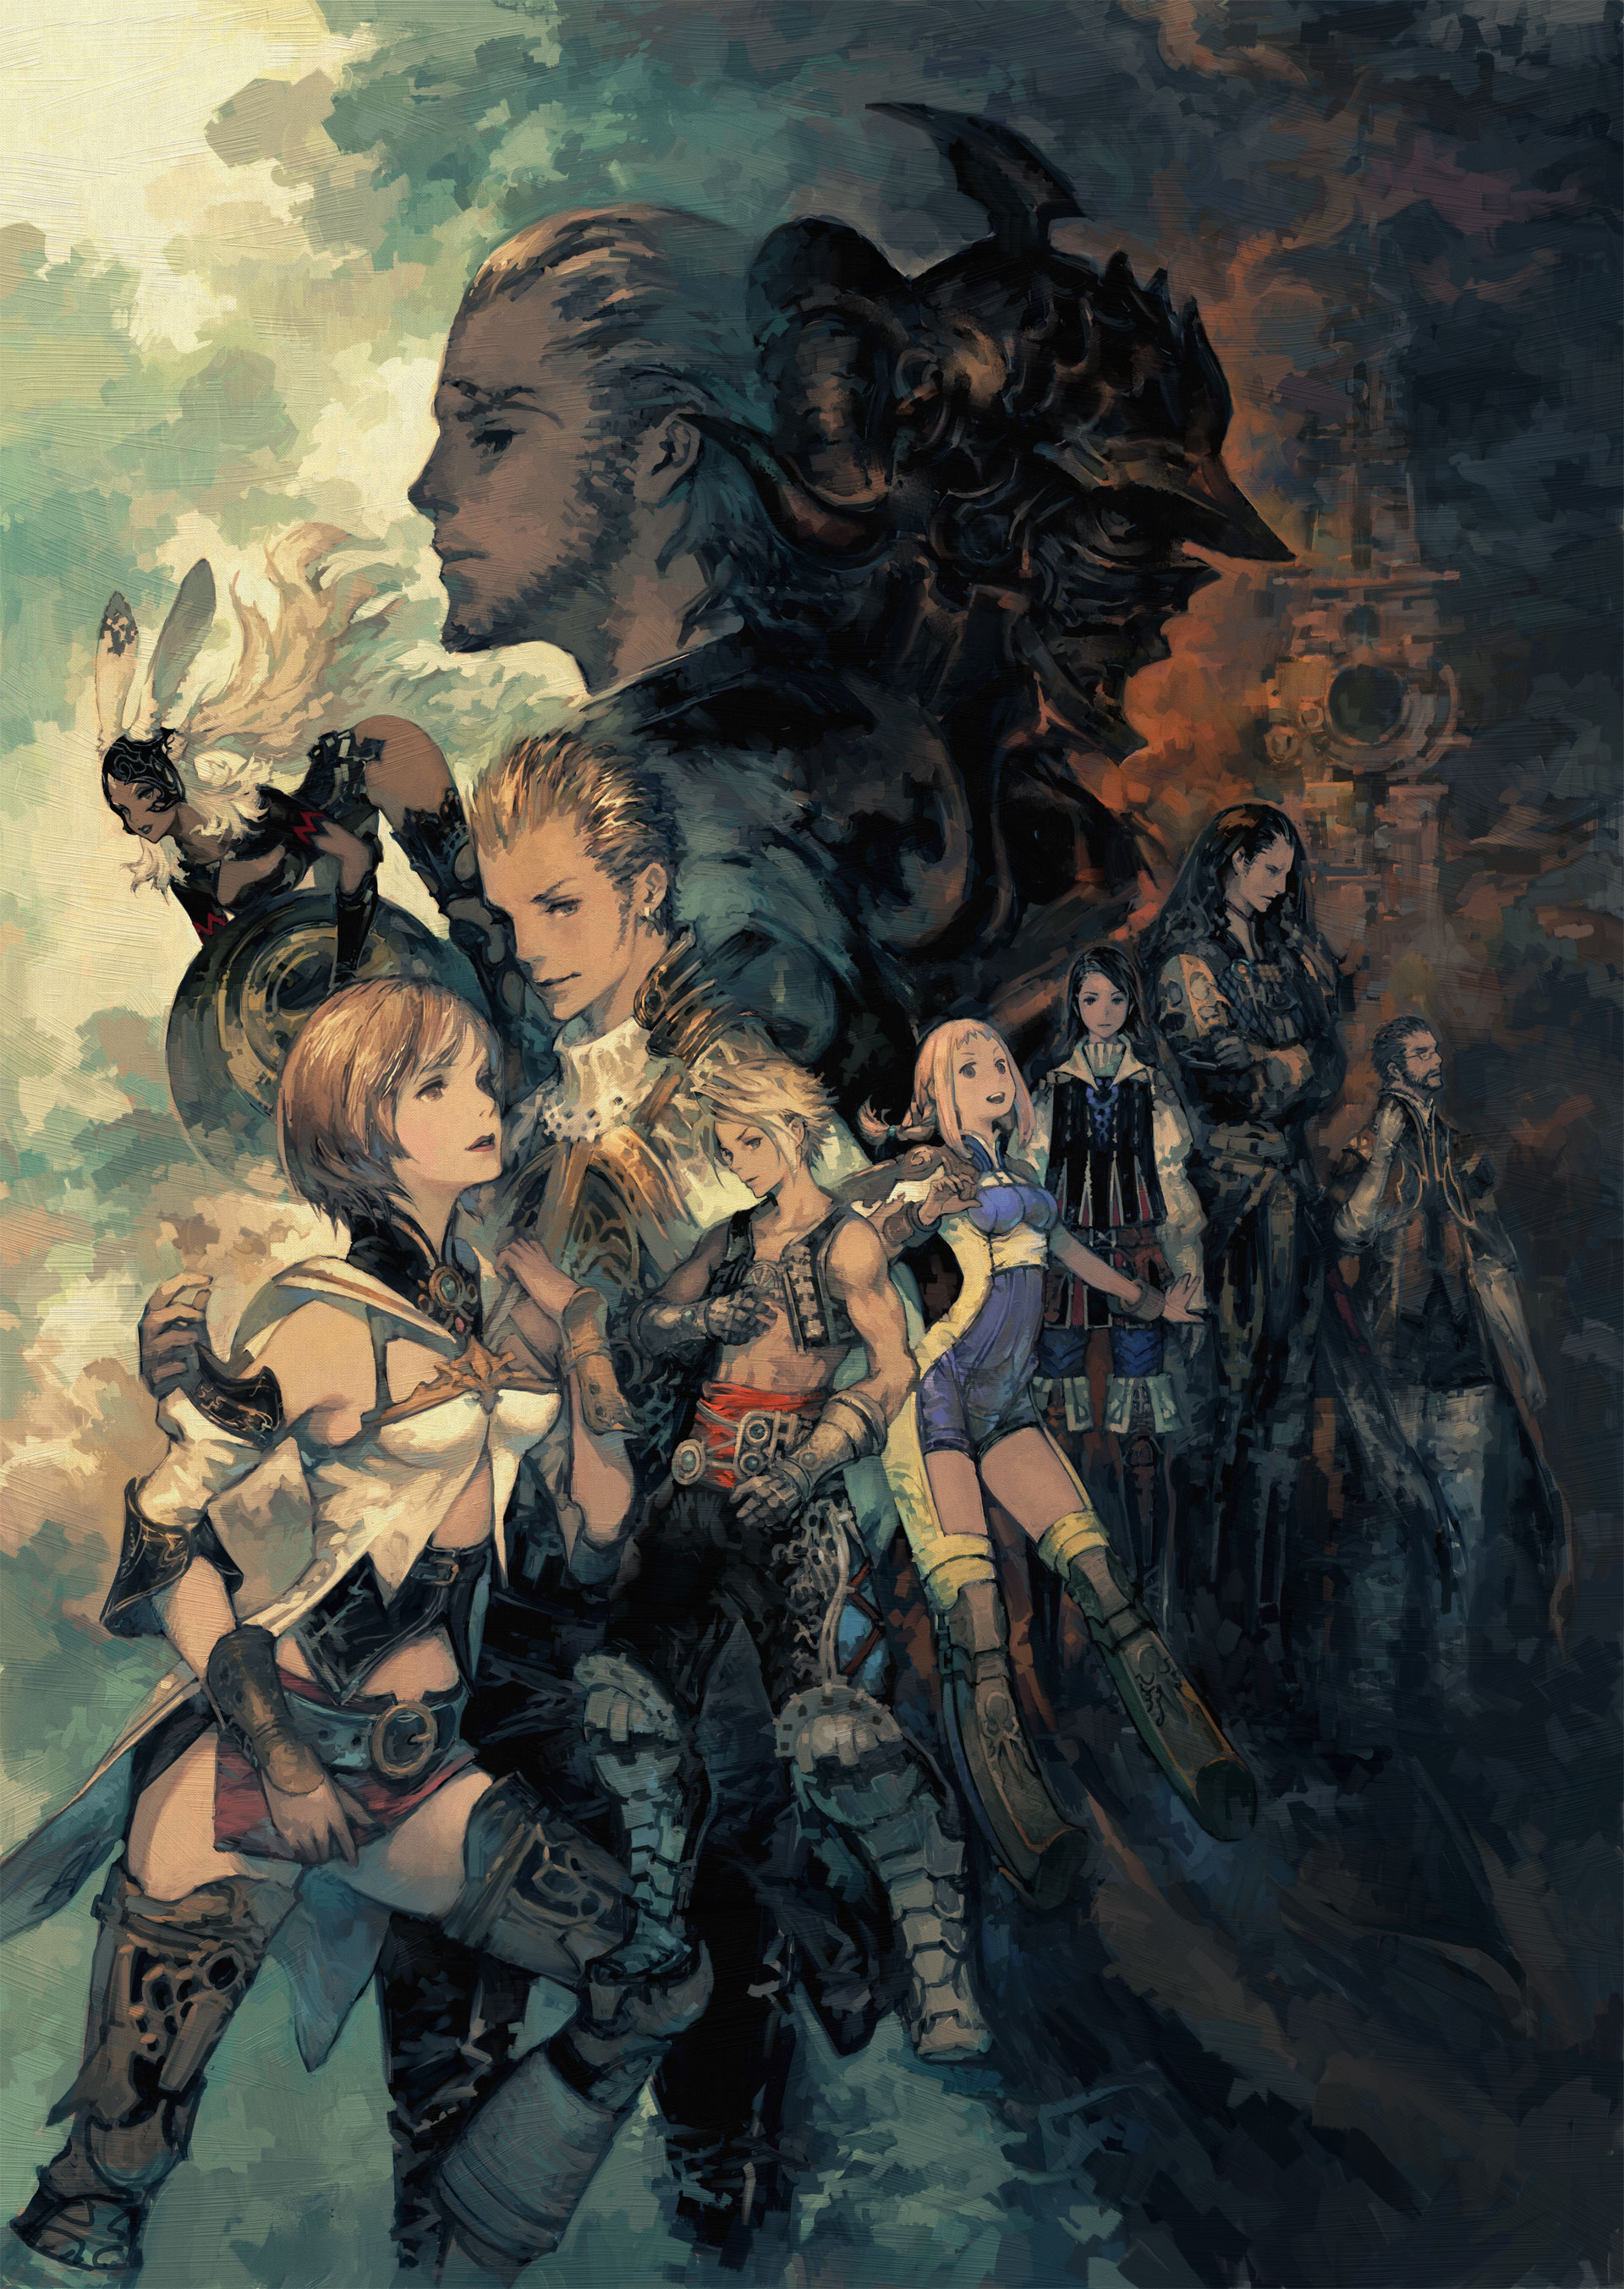 Final Fantasy 12 The Zodiac Age: the best jobs for each character